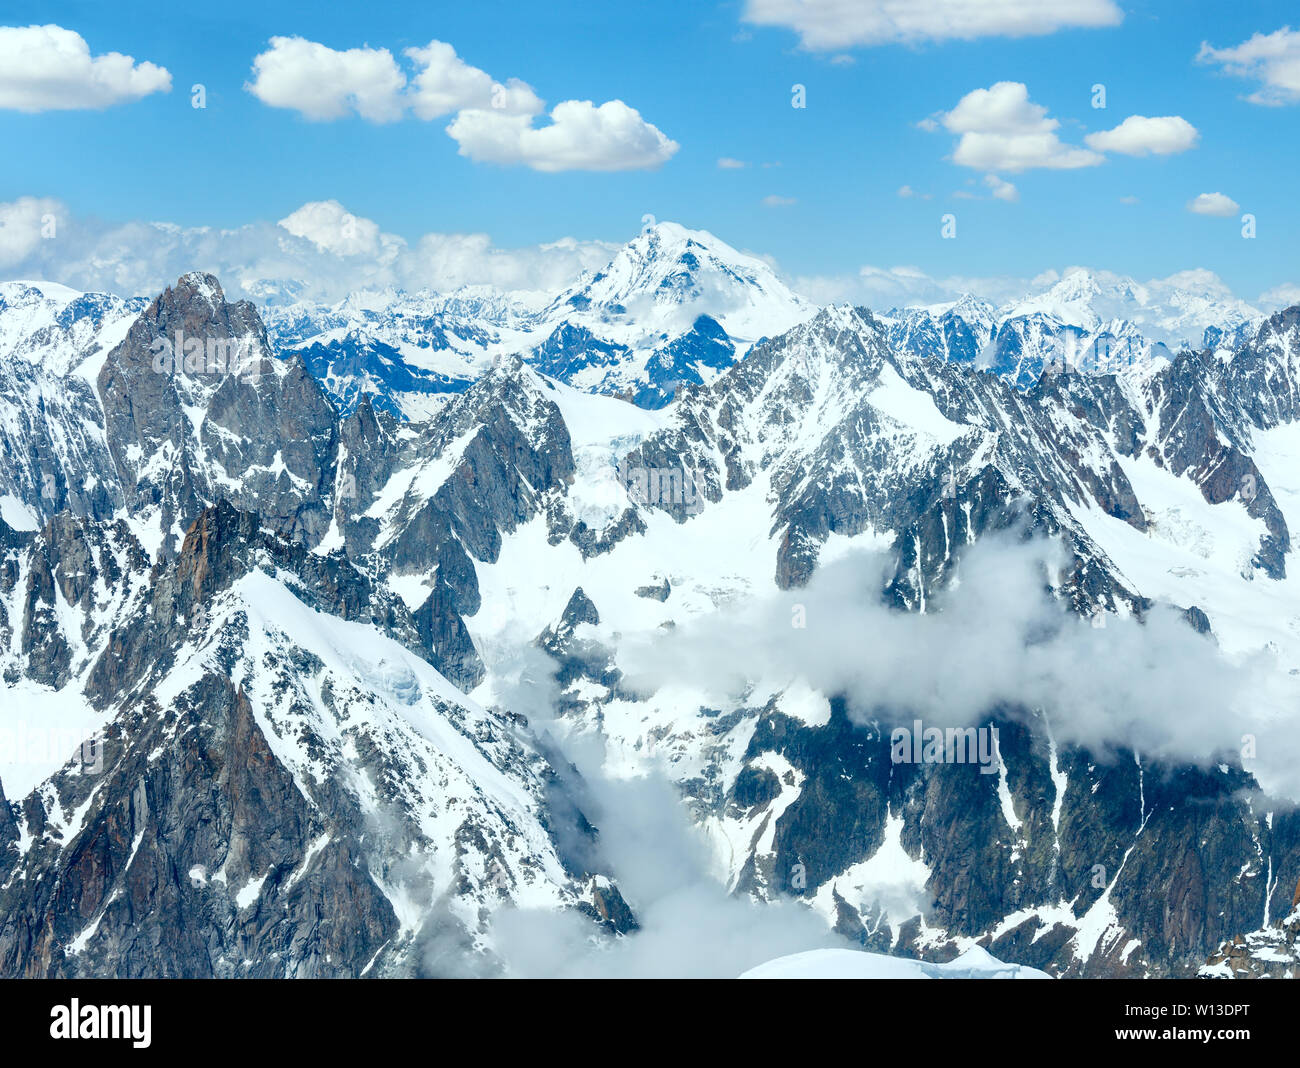 Mont Blanc mountain massif summer landscape. View from Aiguille du Midi Mount, French. - Stock Image